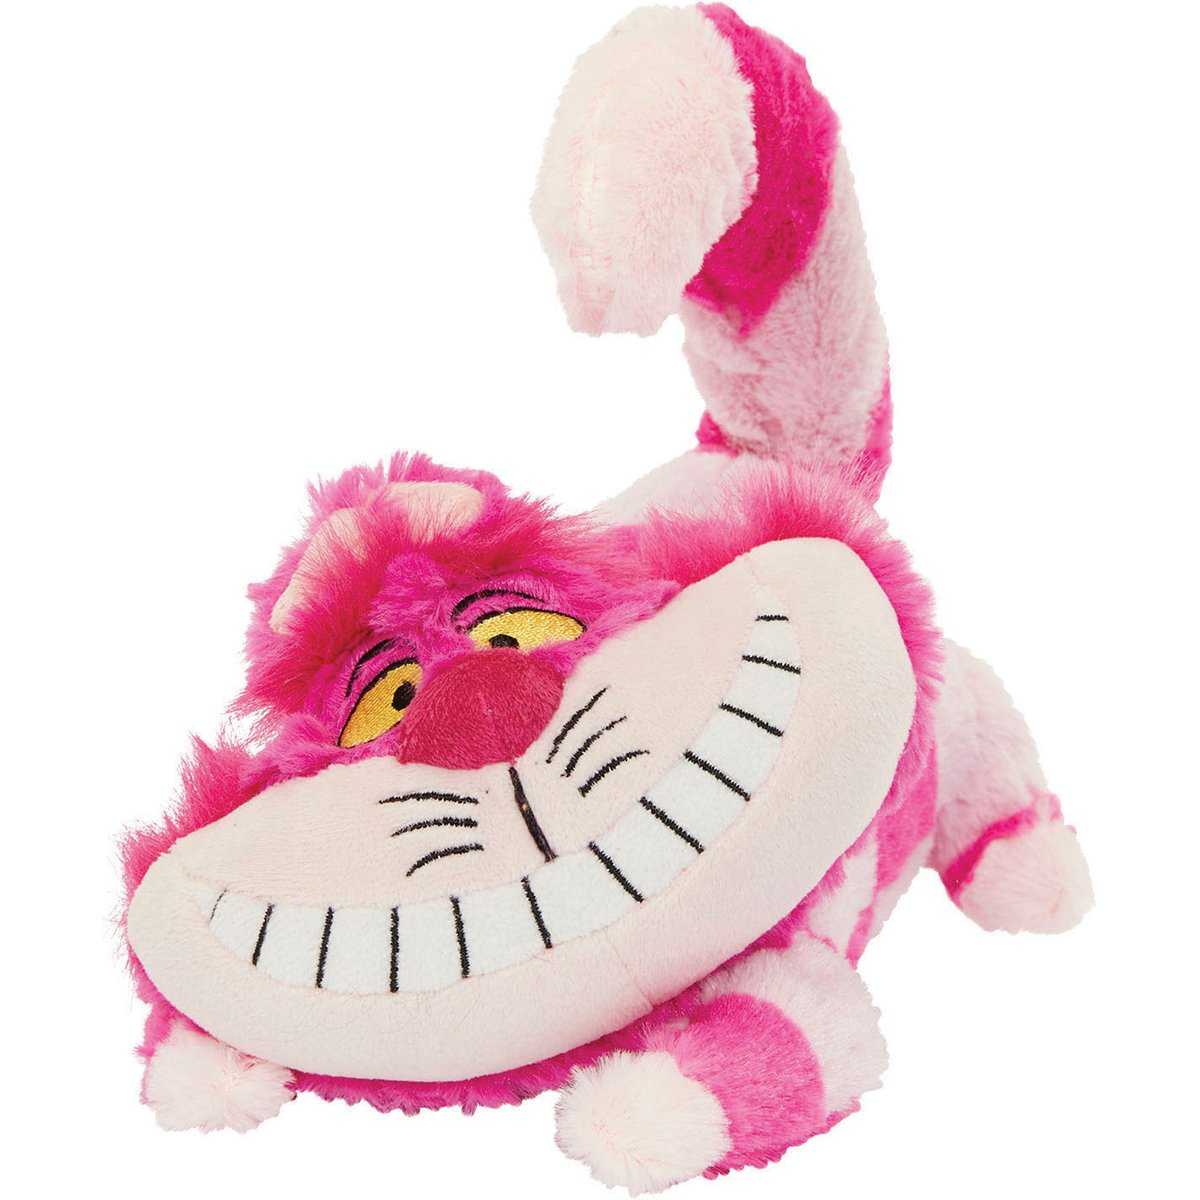 Disney Alice in Wonderland Cheshire Cat Plush Dog Toy